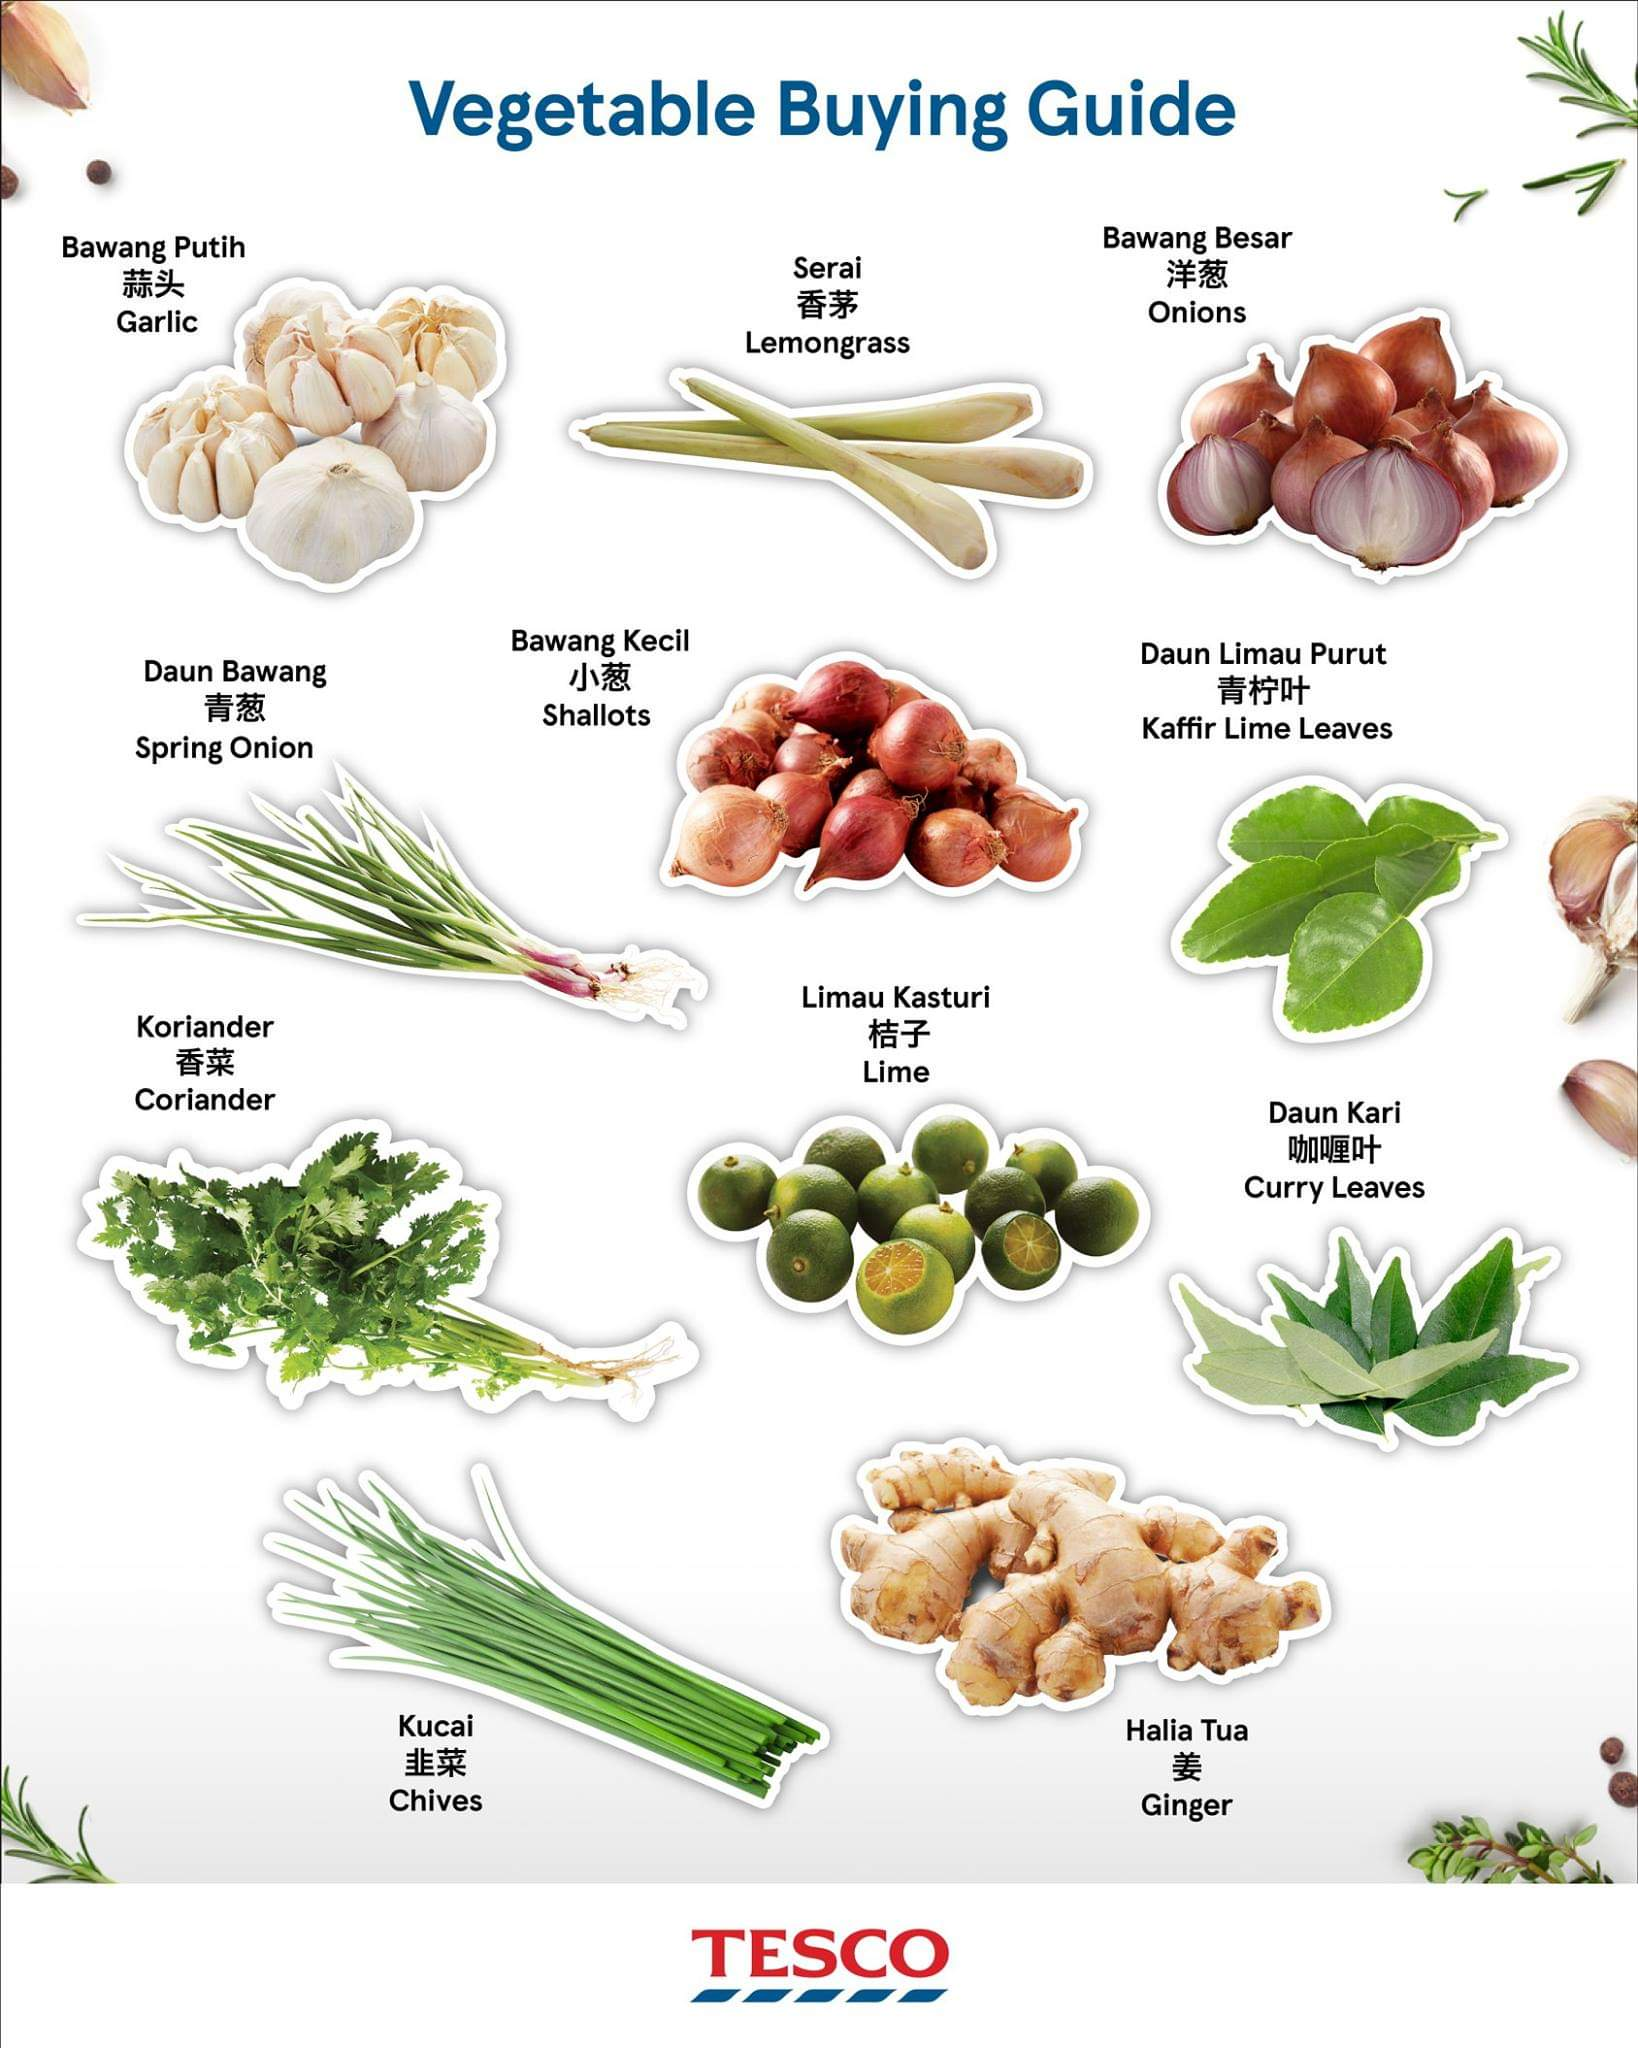 More Types of Vegetable